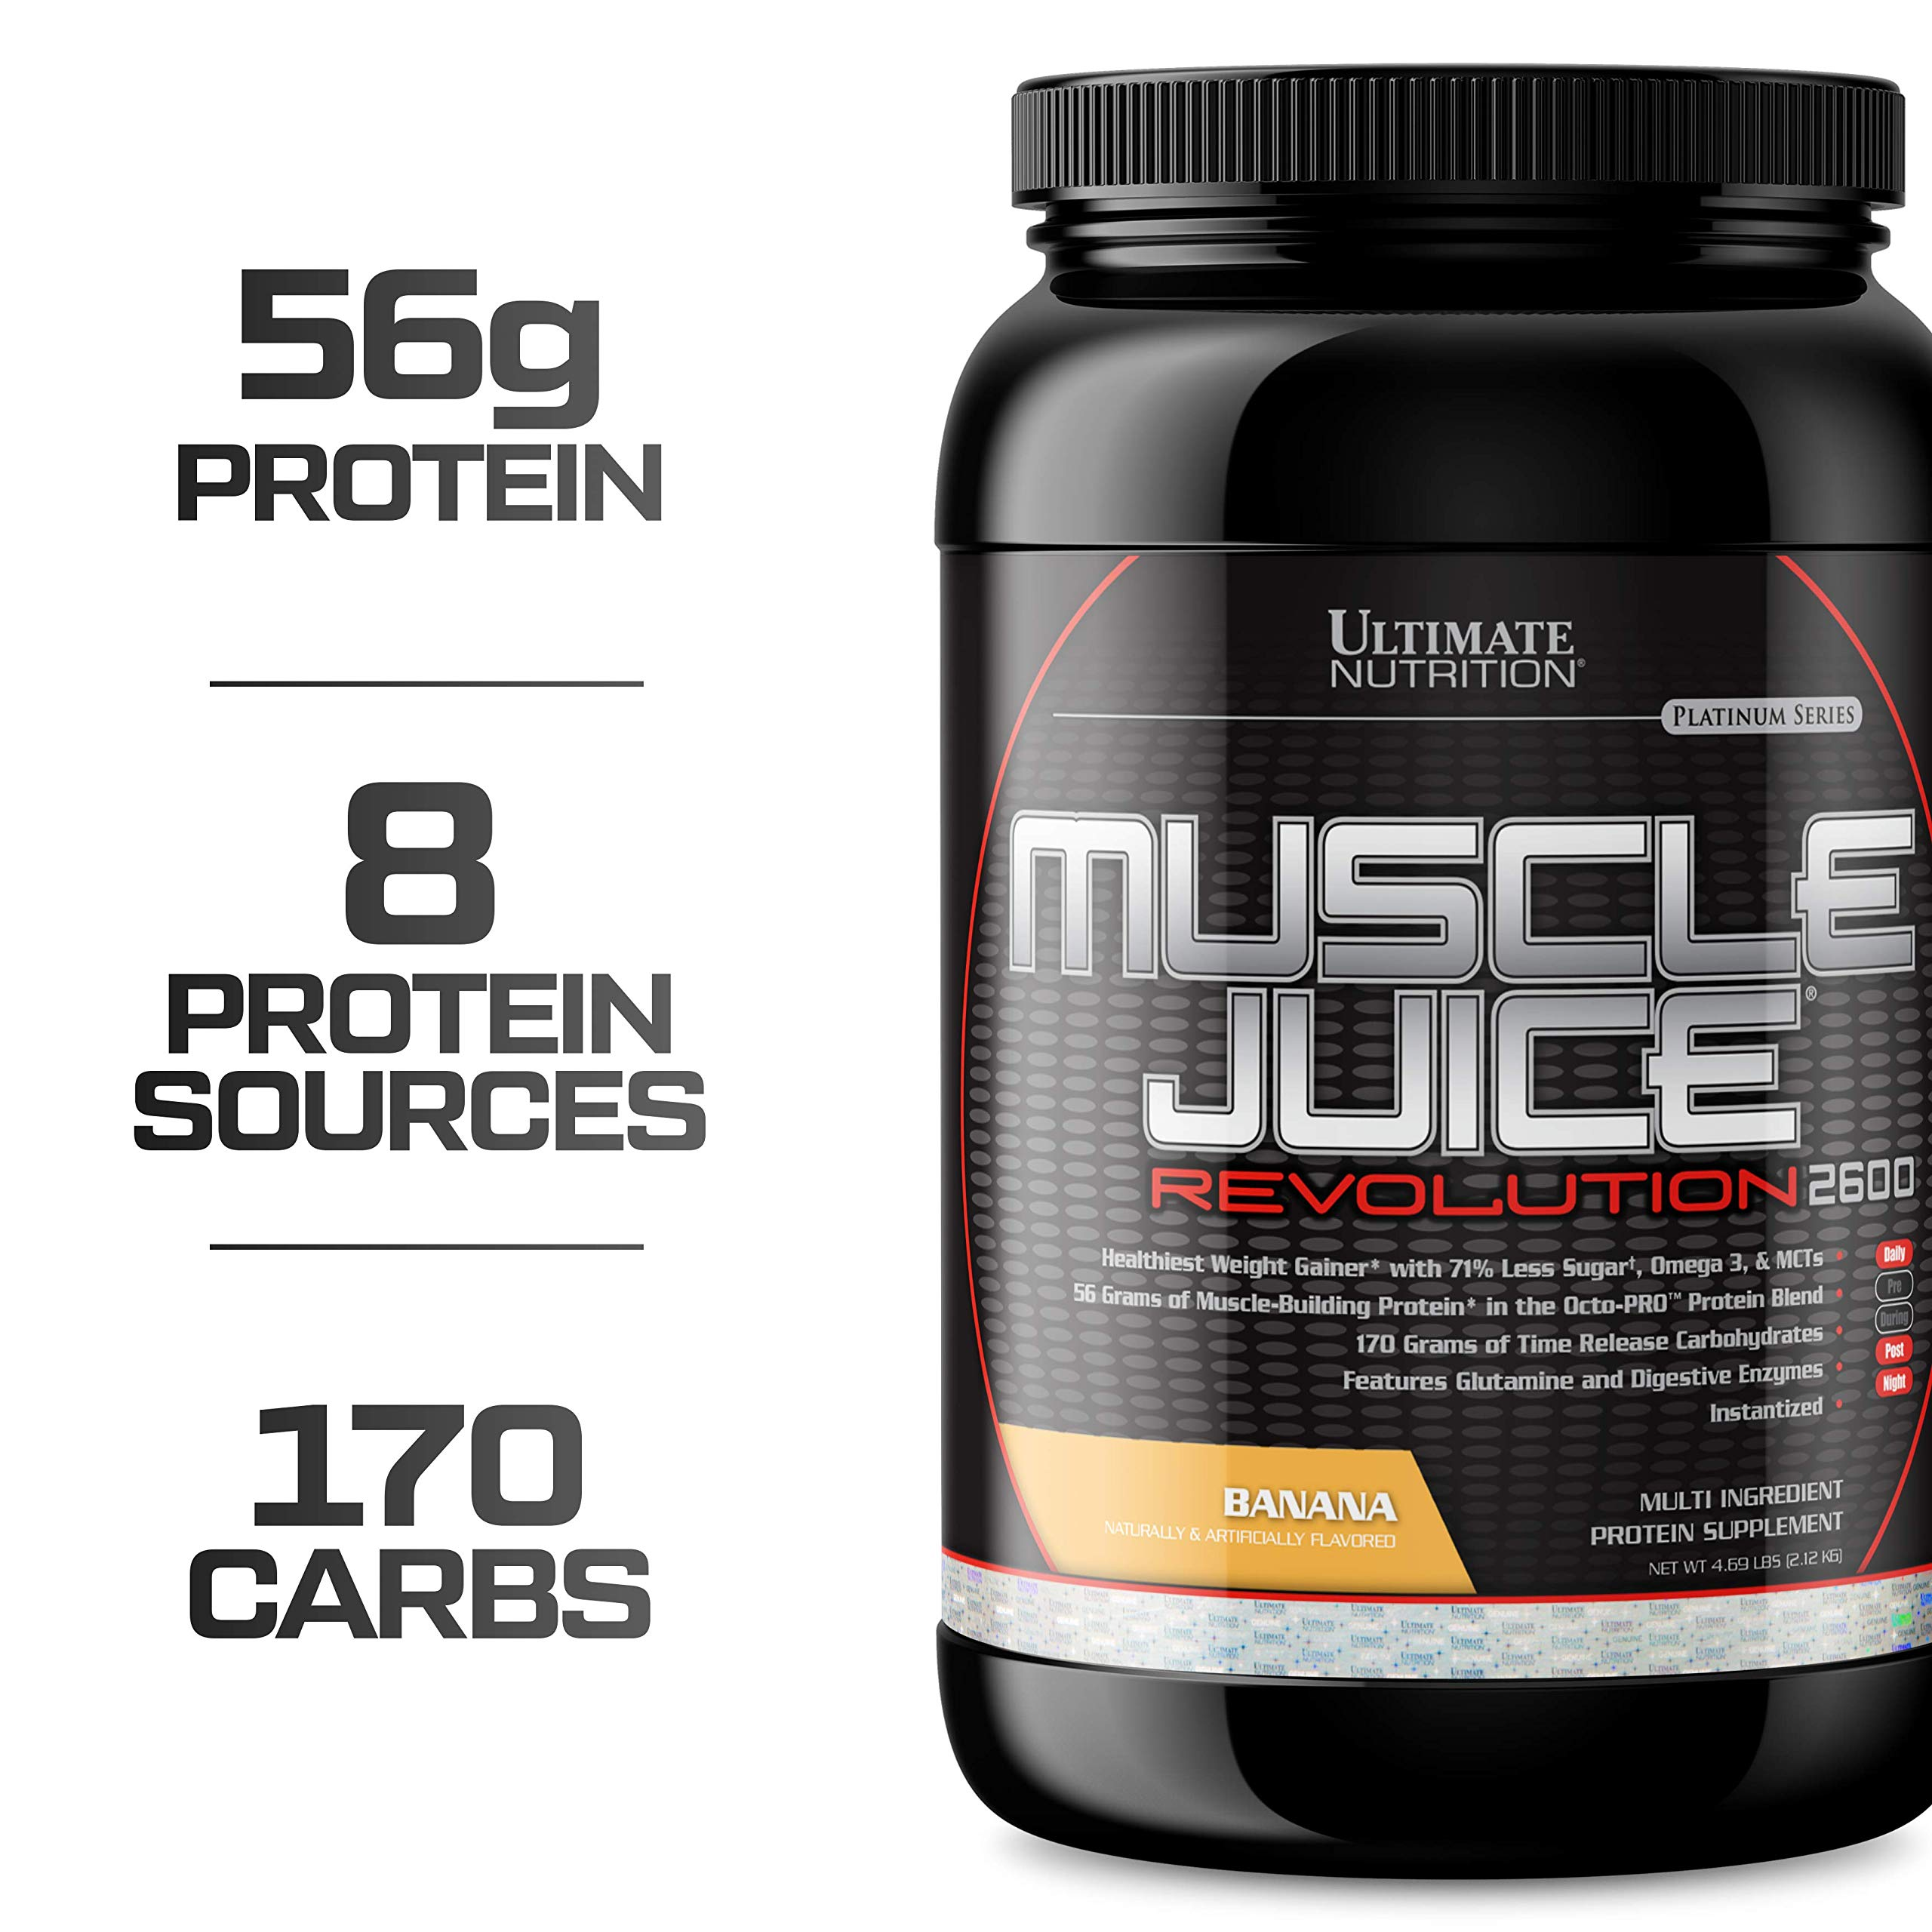 Ultimate Nutrition Muscle Juice Revolution Weight and Muscle Gainer Protein Powder with Egg Protein, Micellar Casein, and Maltodextrin, 4.69 Pounds by Ultimate Nutrition